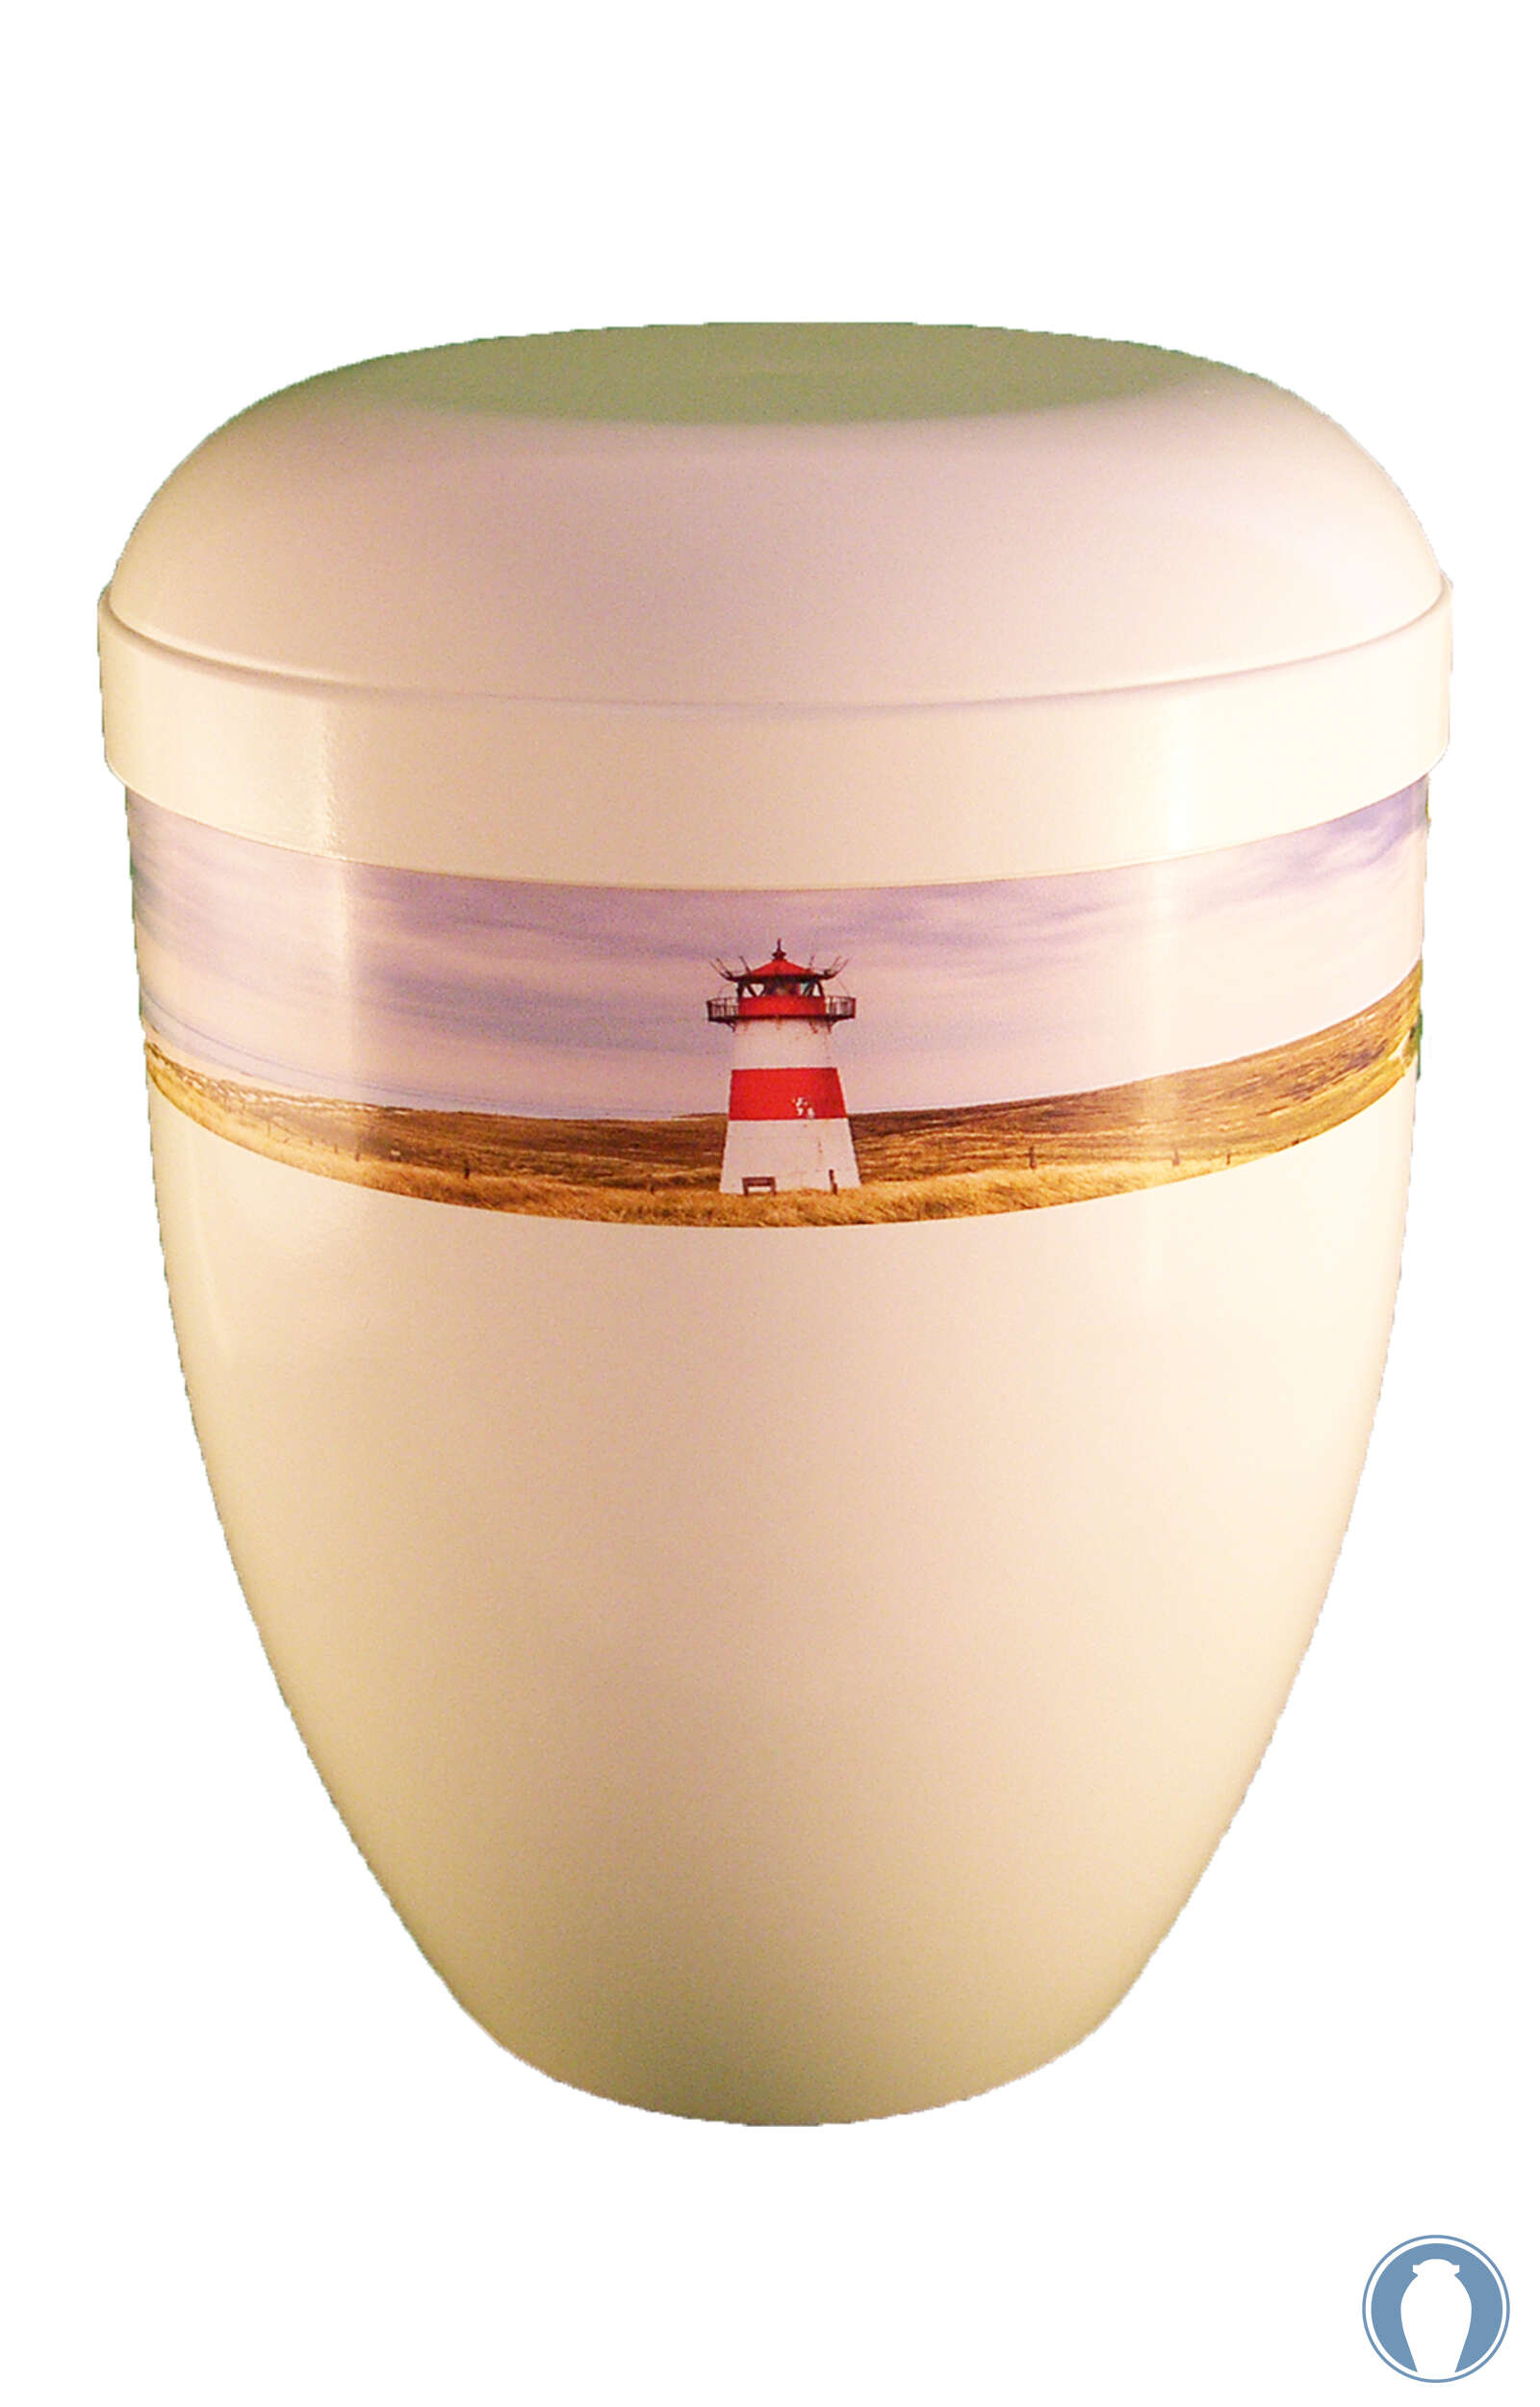 en BWG3712 funeral urn for human ashes with lighthouse